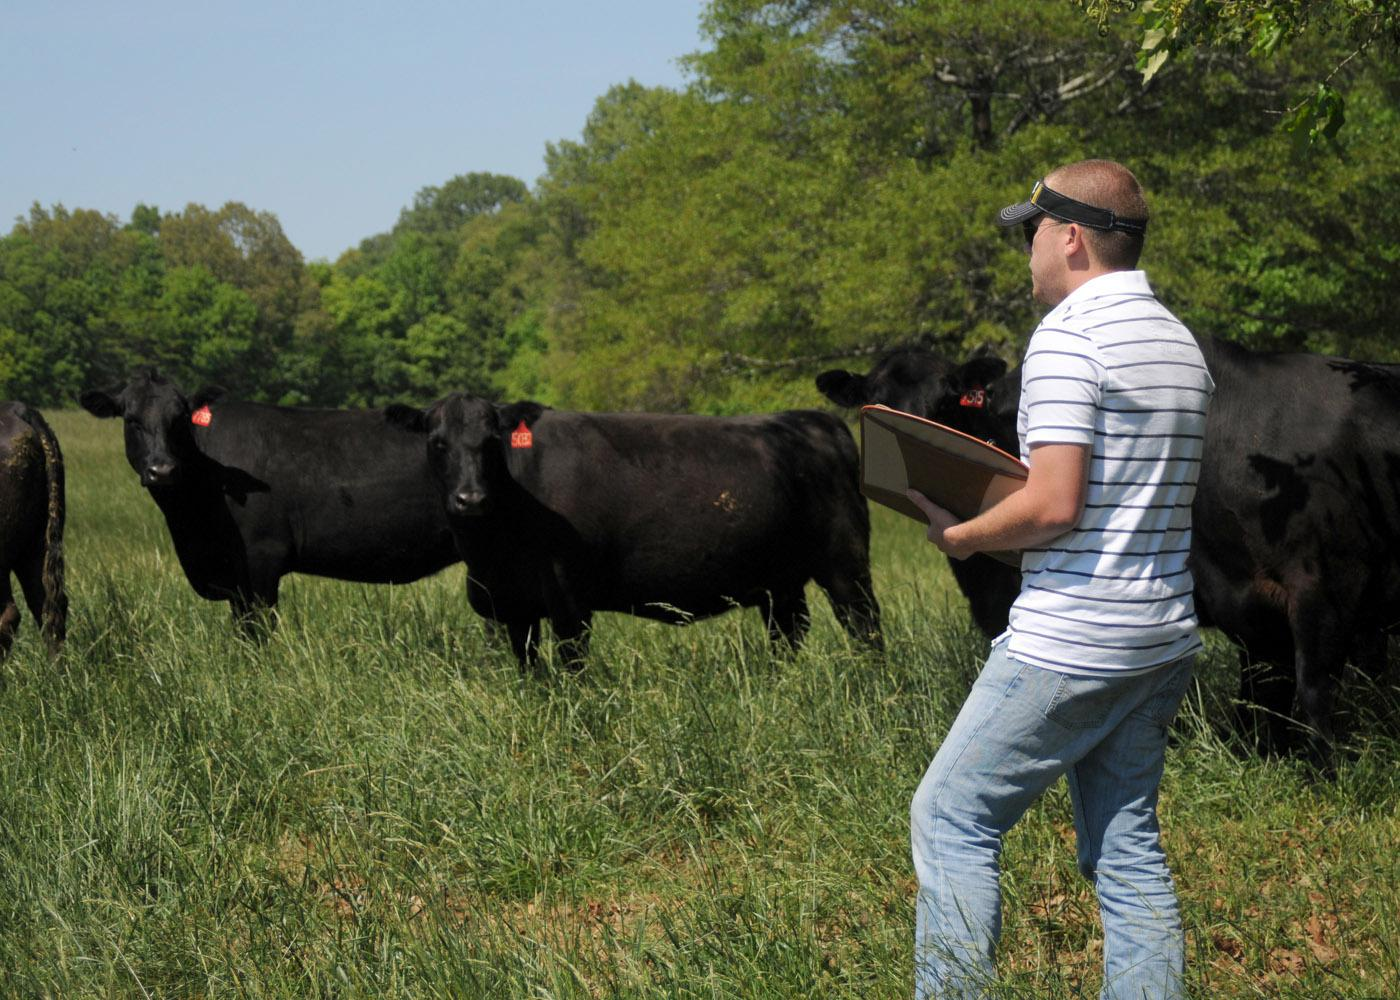 Nick Simmons of Saltillo is one of two evaluators using a new method of scoring hair shedding on this herd of Angus cattle on Mississippi State University's South Farm in April. (Photo by Kat Lawrence)